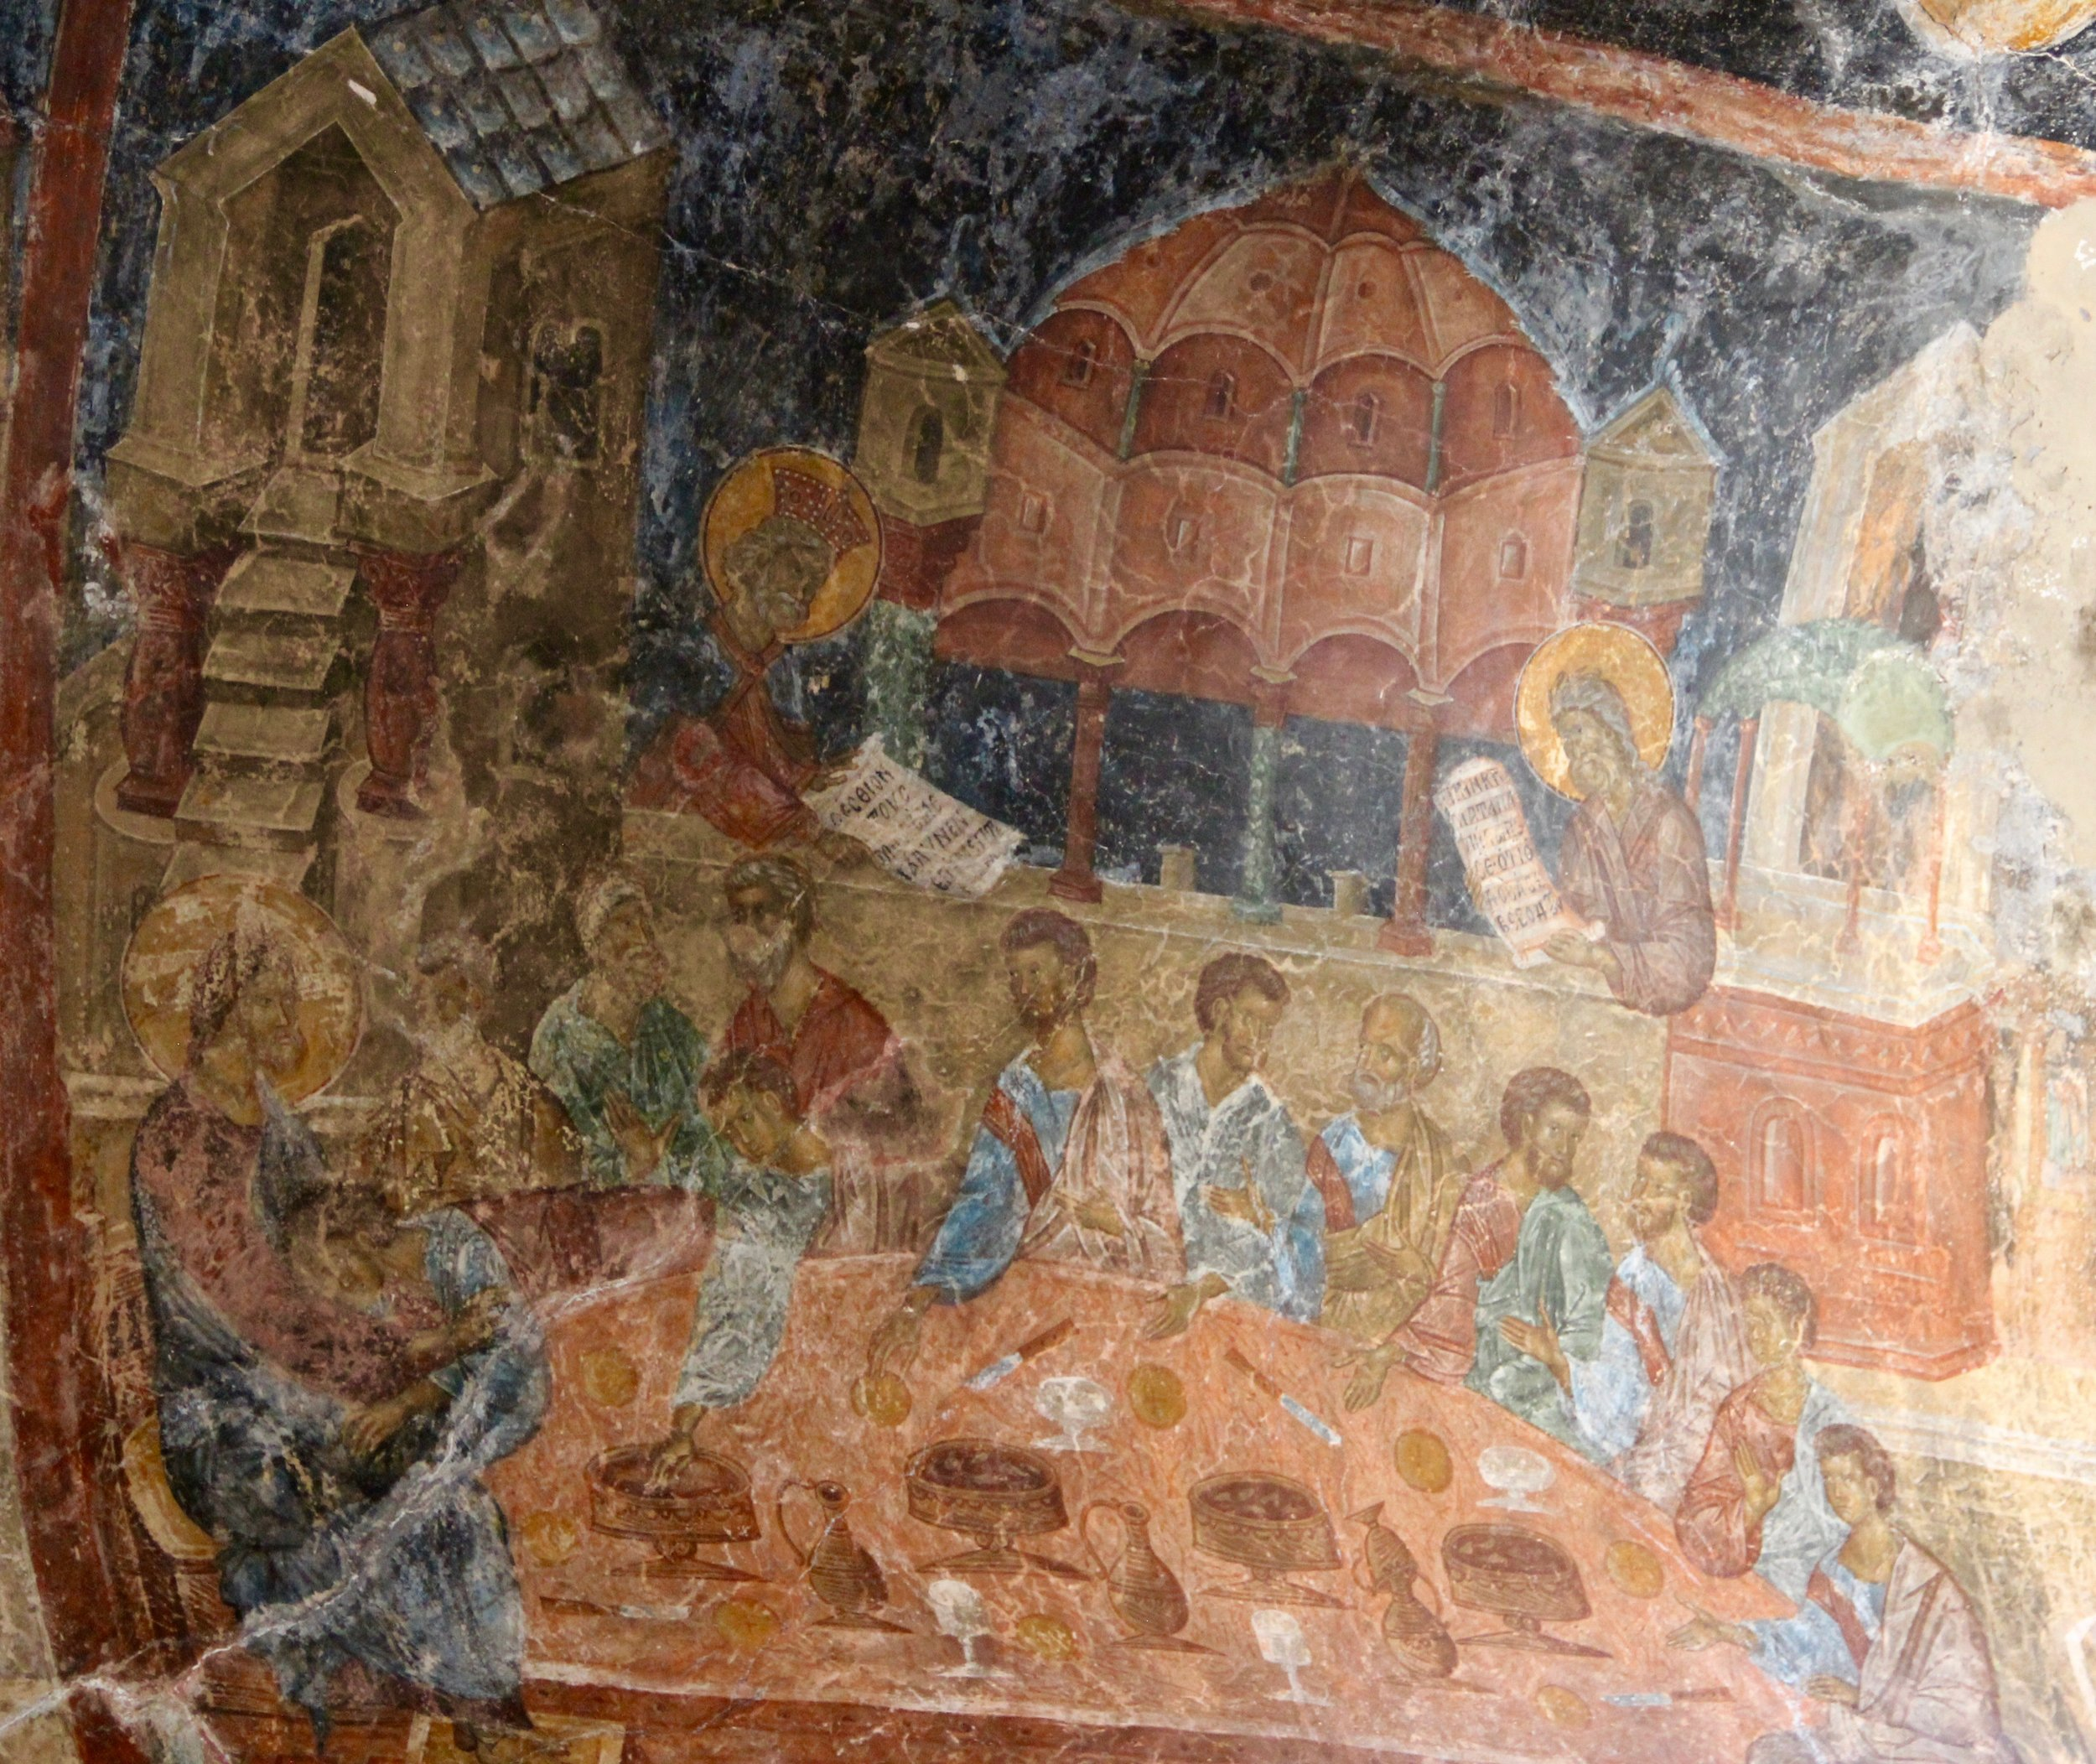 Frescoes on every surface - Jerusalem perhaps?